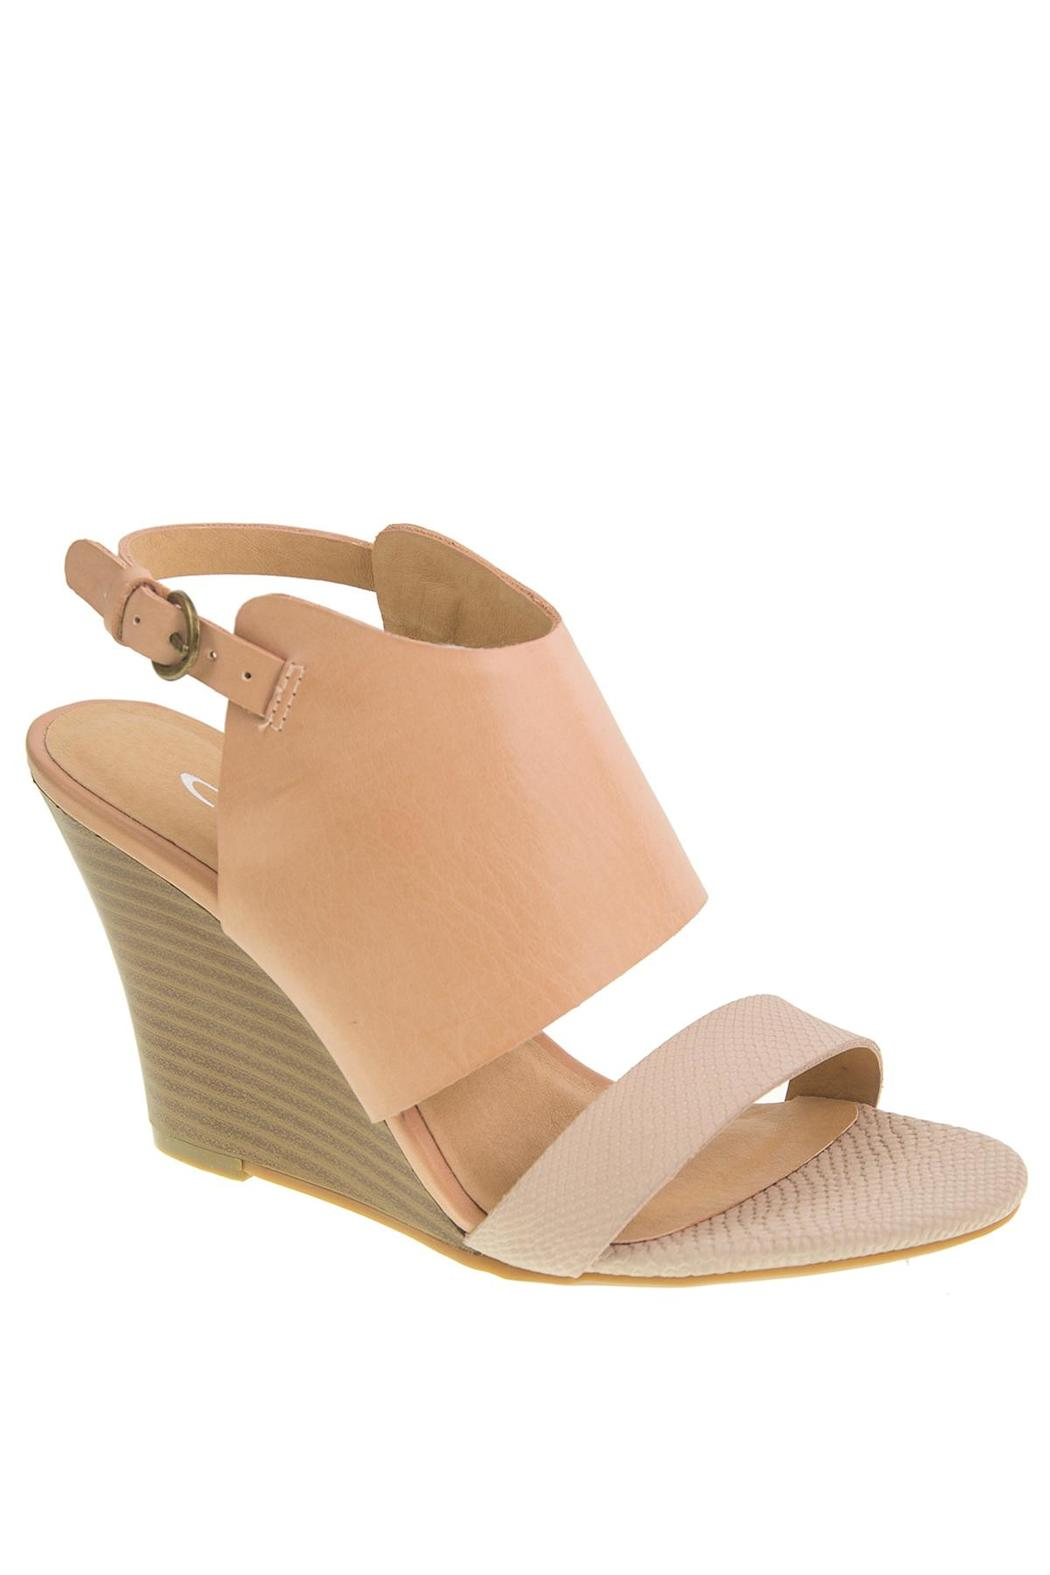 Cl By Chinese Laundry Baja Slingback Wedge From San Diego